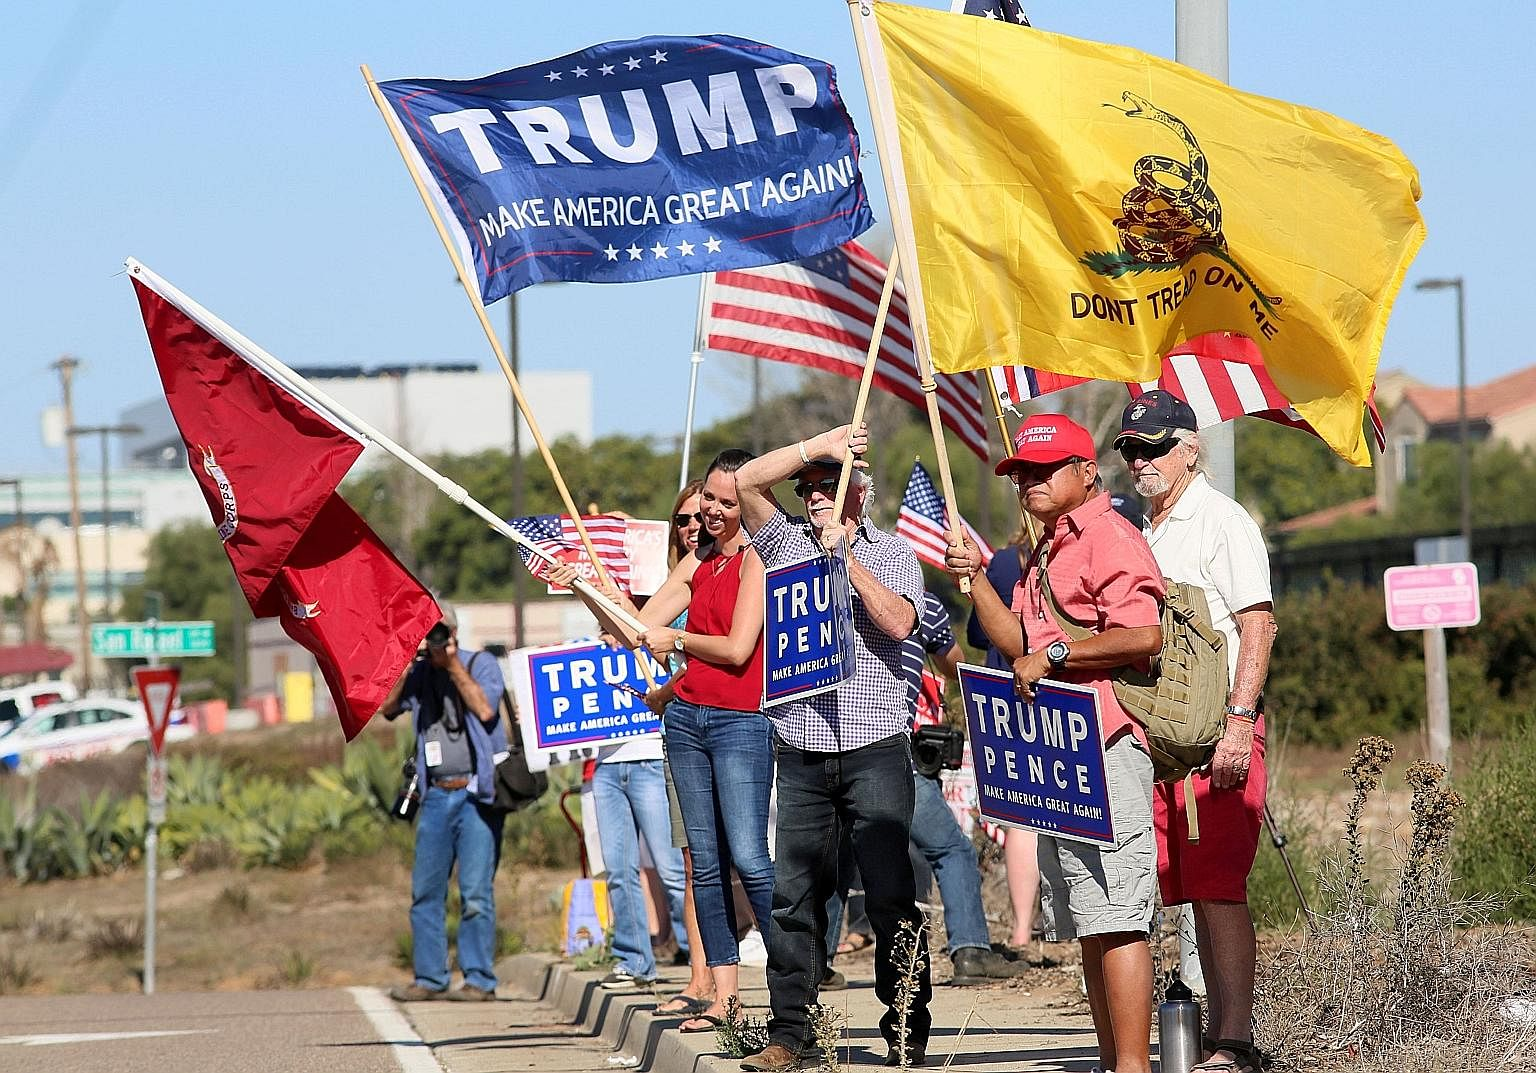 Support for leaders such as American President-elect Donald Trump is hardly an isolated event. Across the globe, there is a surge of such populist leaders using aggressive, nationalist rhetoric to win elections.